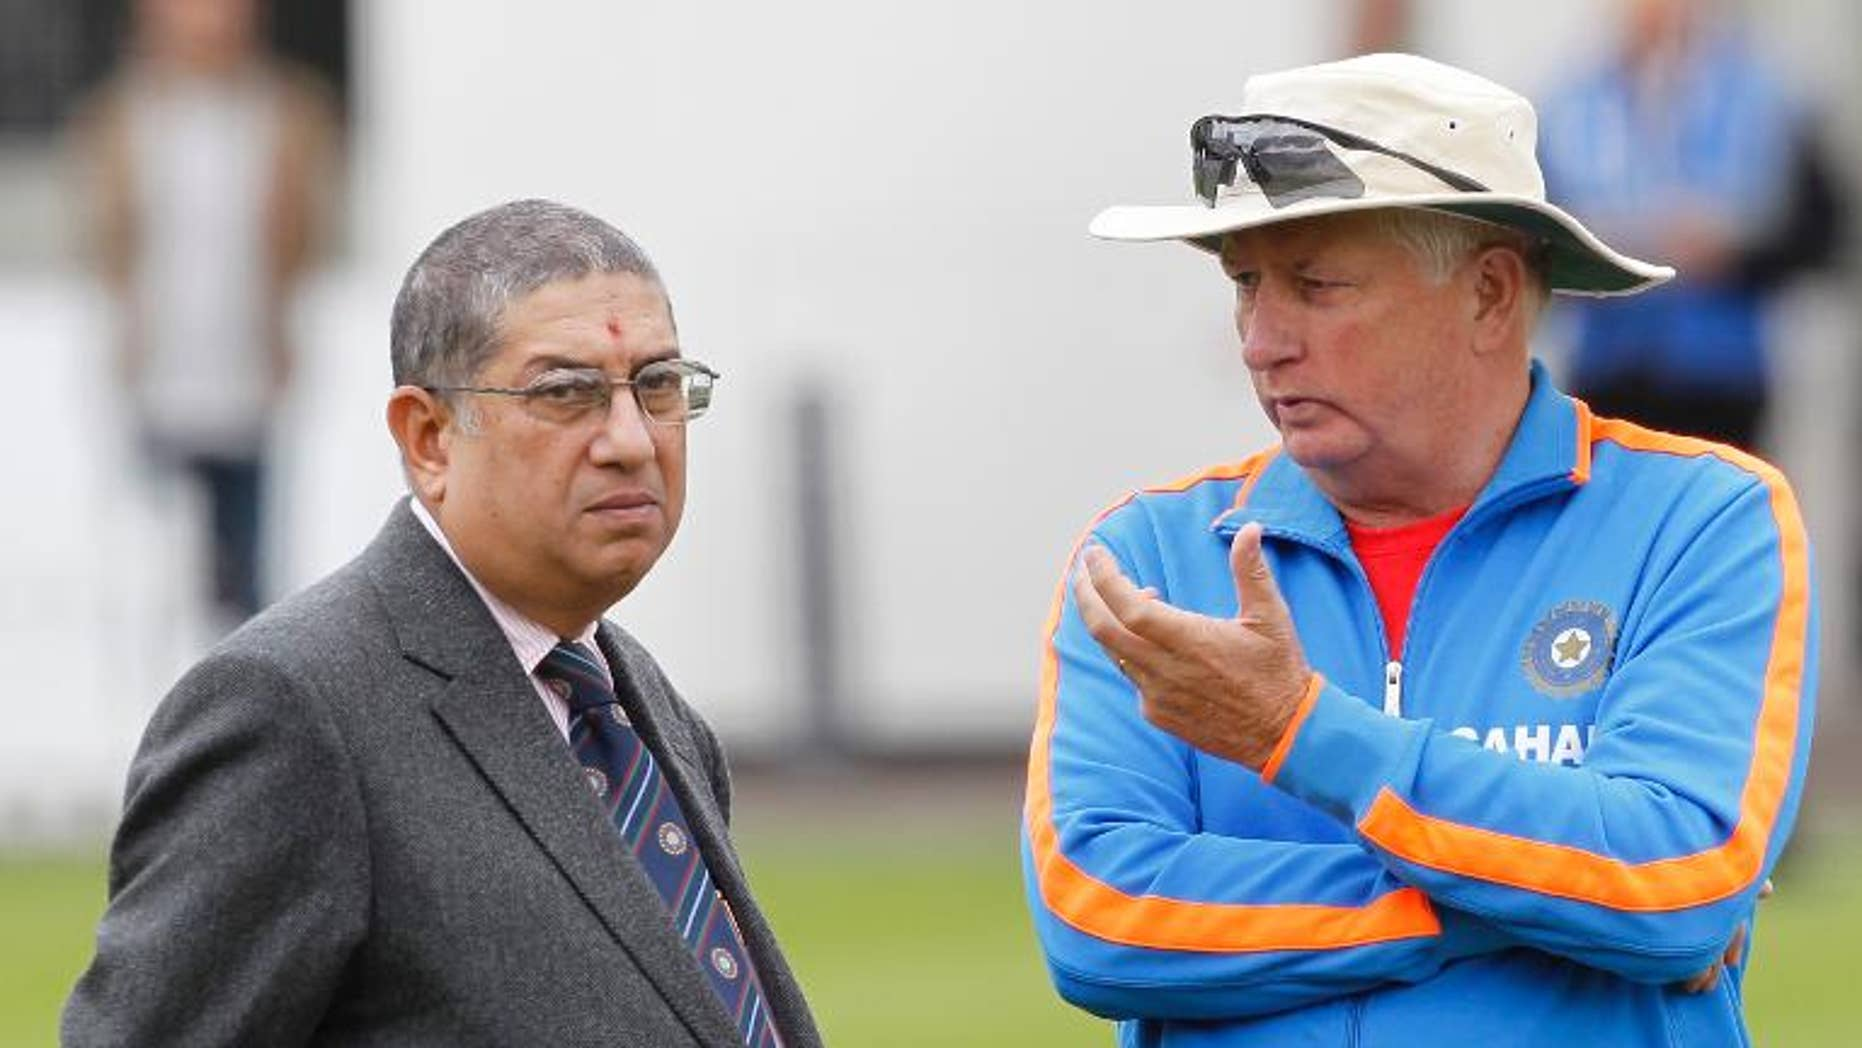 Narayanaswami Srinivasan (L), Secretary of the Board of Control for Cricket in India (BCCI), talks with India's coach Duncan Fletcher during a training session at Lord's Cricket Ground in London, on July 20, 2011.